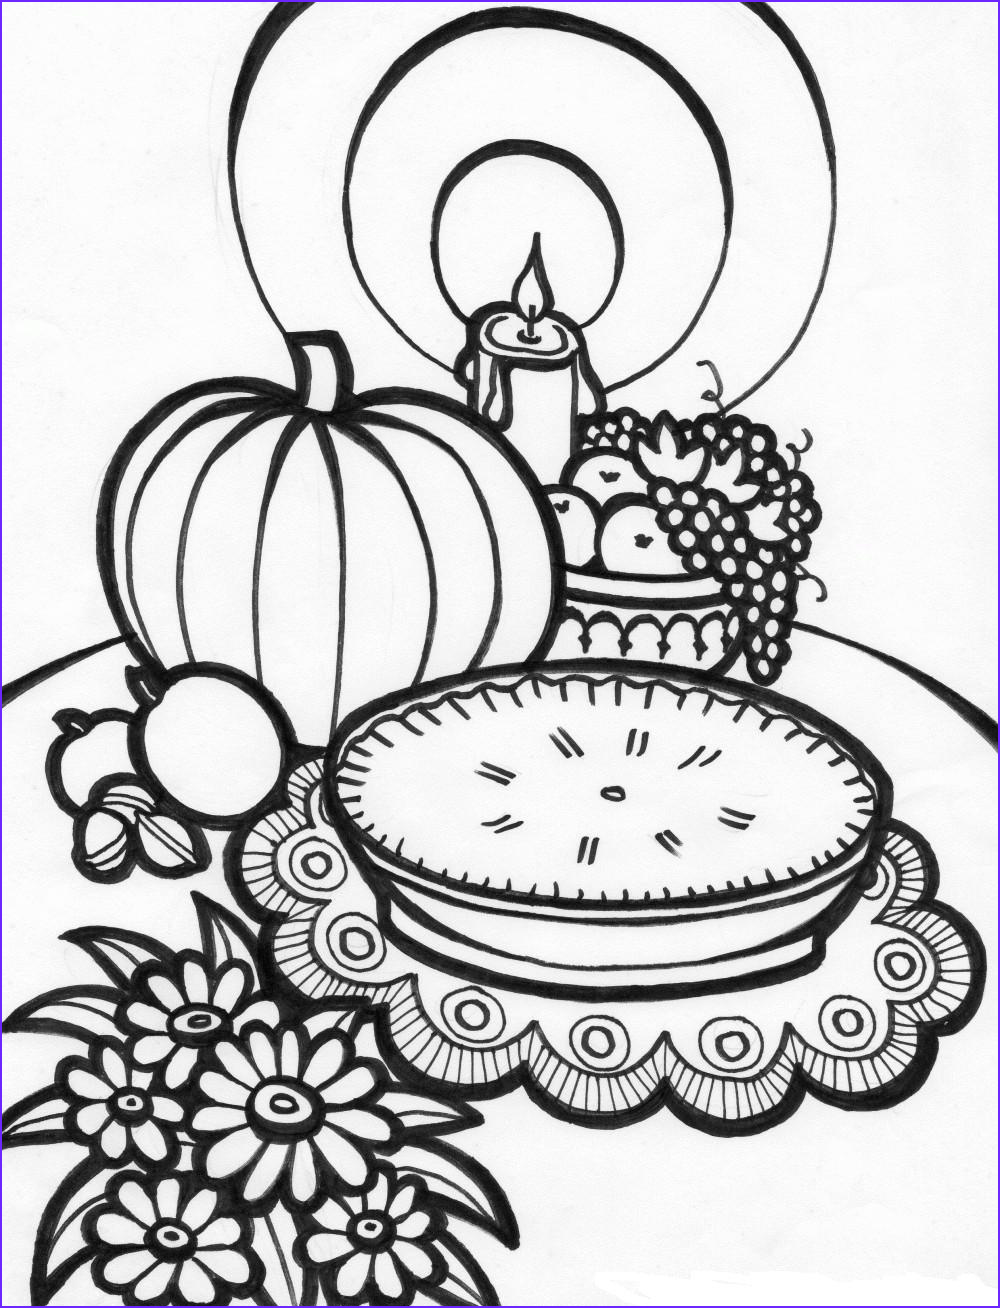 Free Printable Thanksgiving Coloring Pages Inspirational Collection 16 Free Thanksgiving Coloring Pages for Kids& toddlers